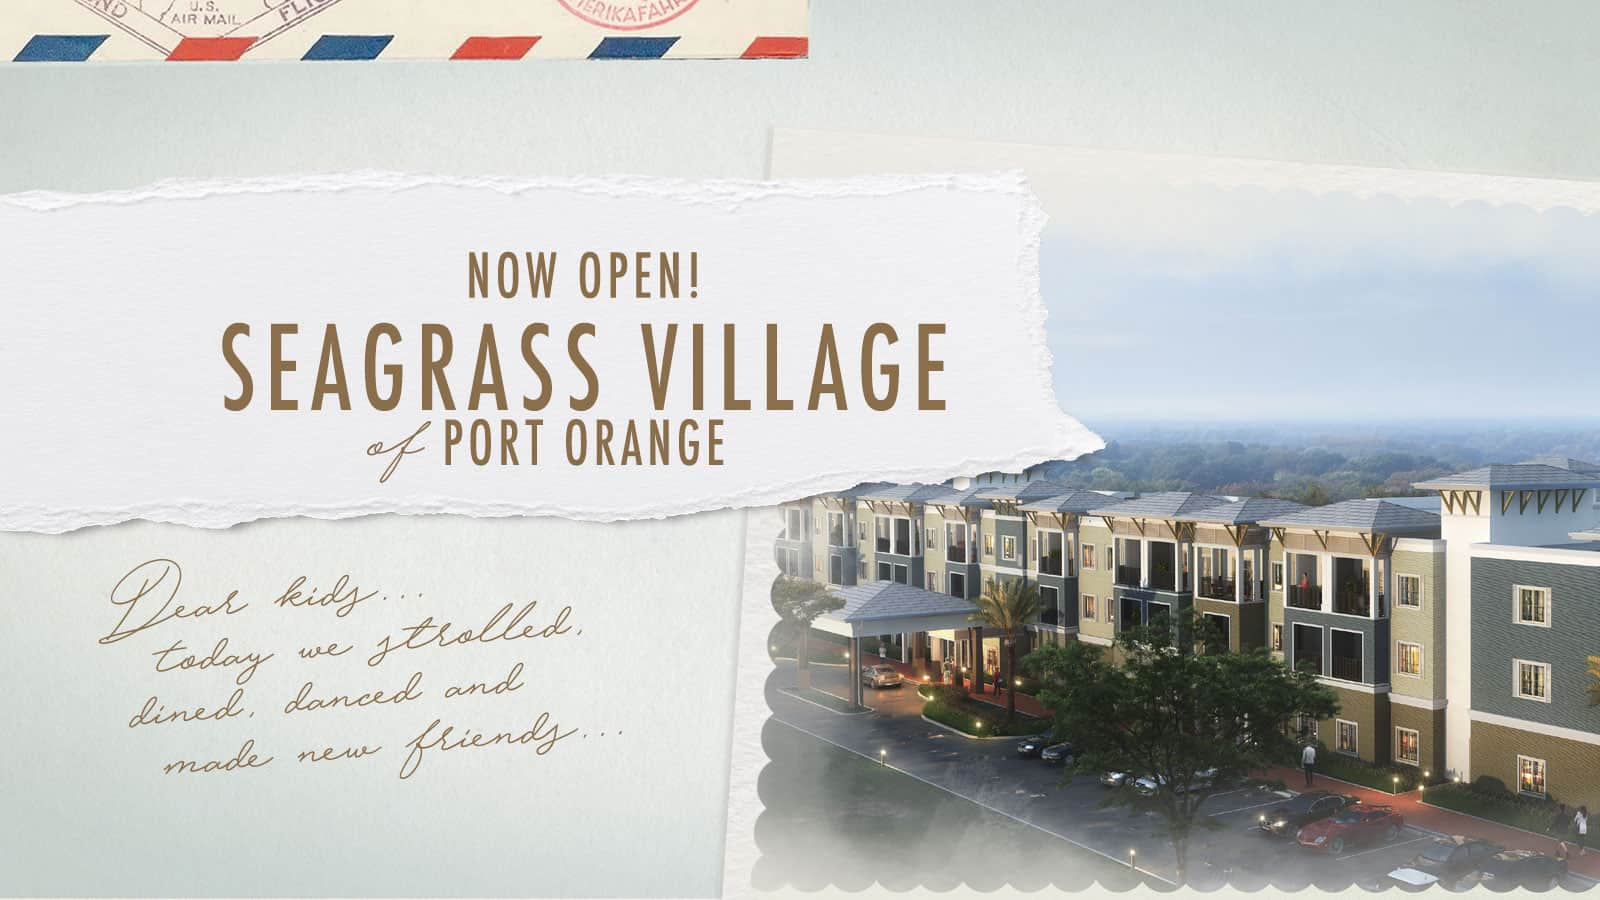 Seagrass Village of Port Orange - Now Open!